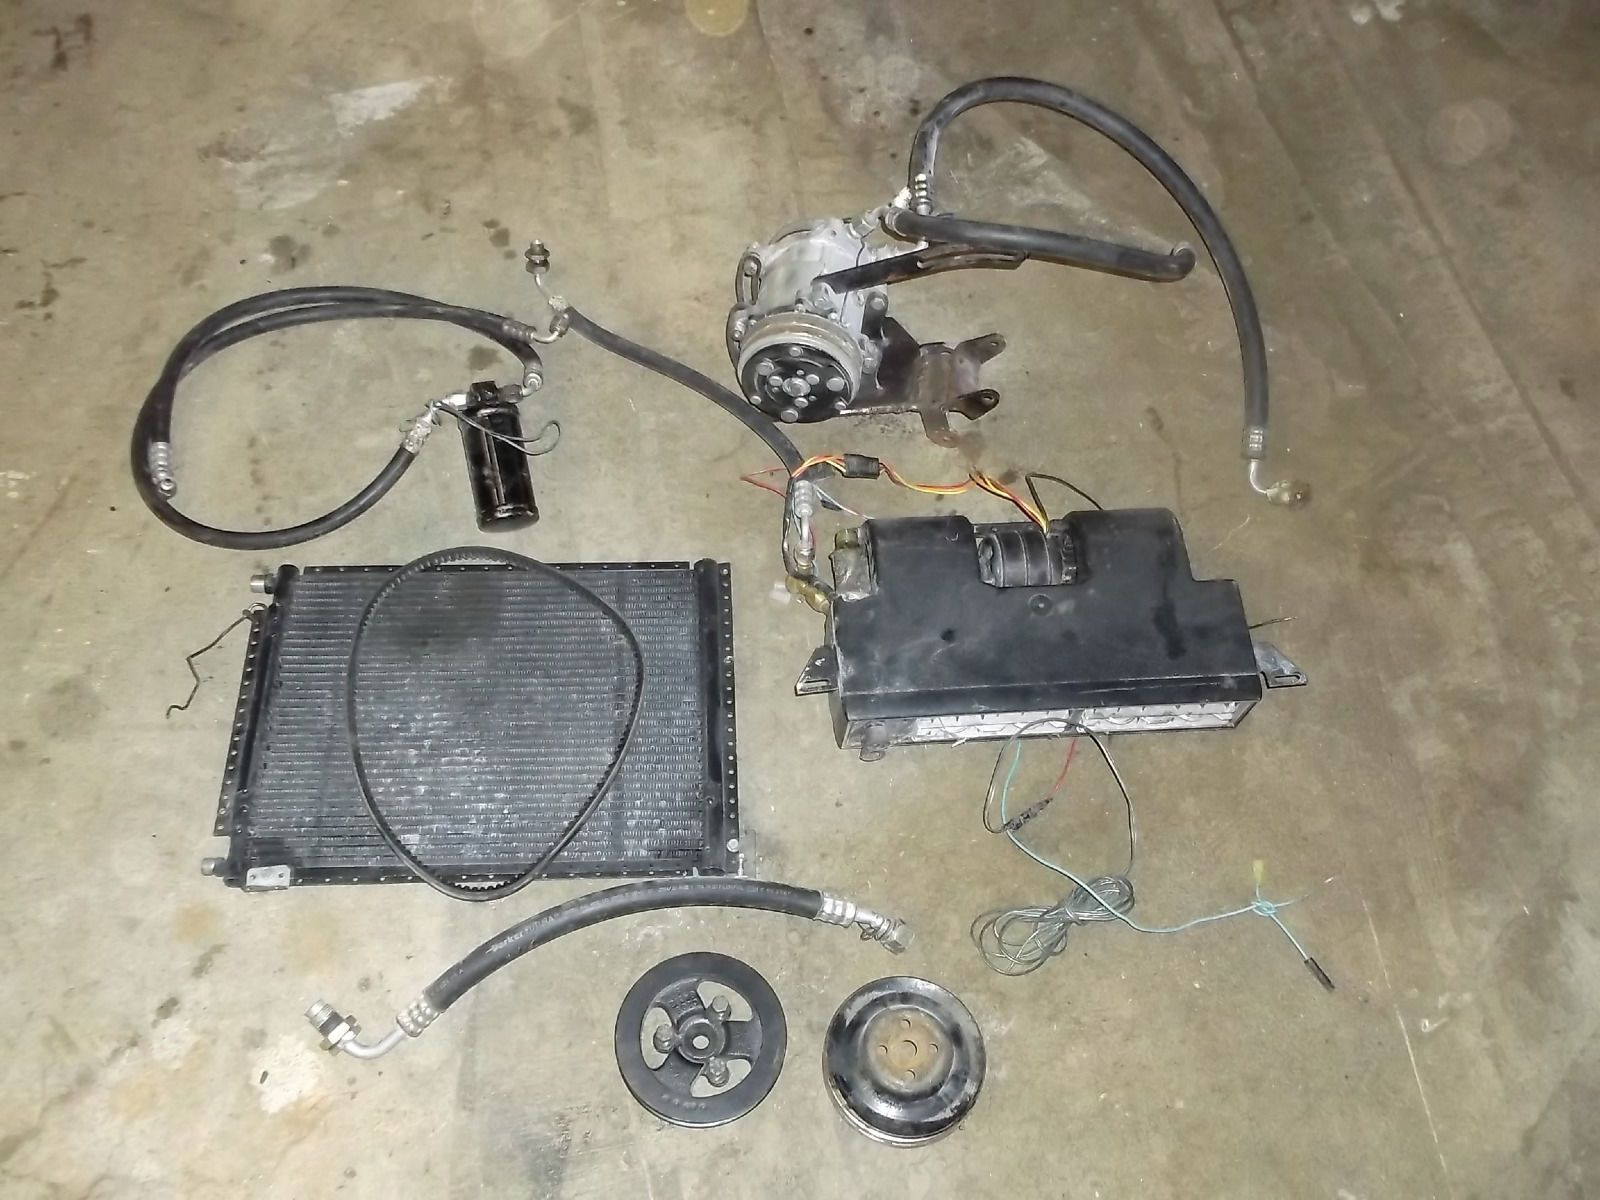 1965 1966 1967 1968 Mustang Air Conditioning Cougar A/C